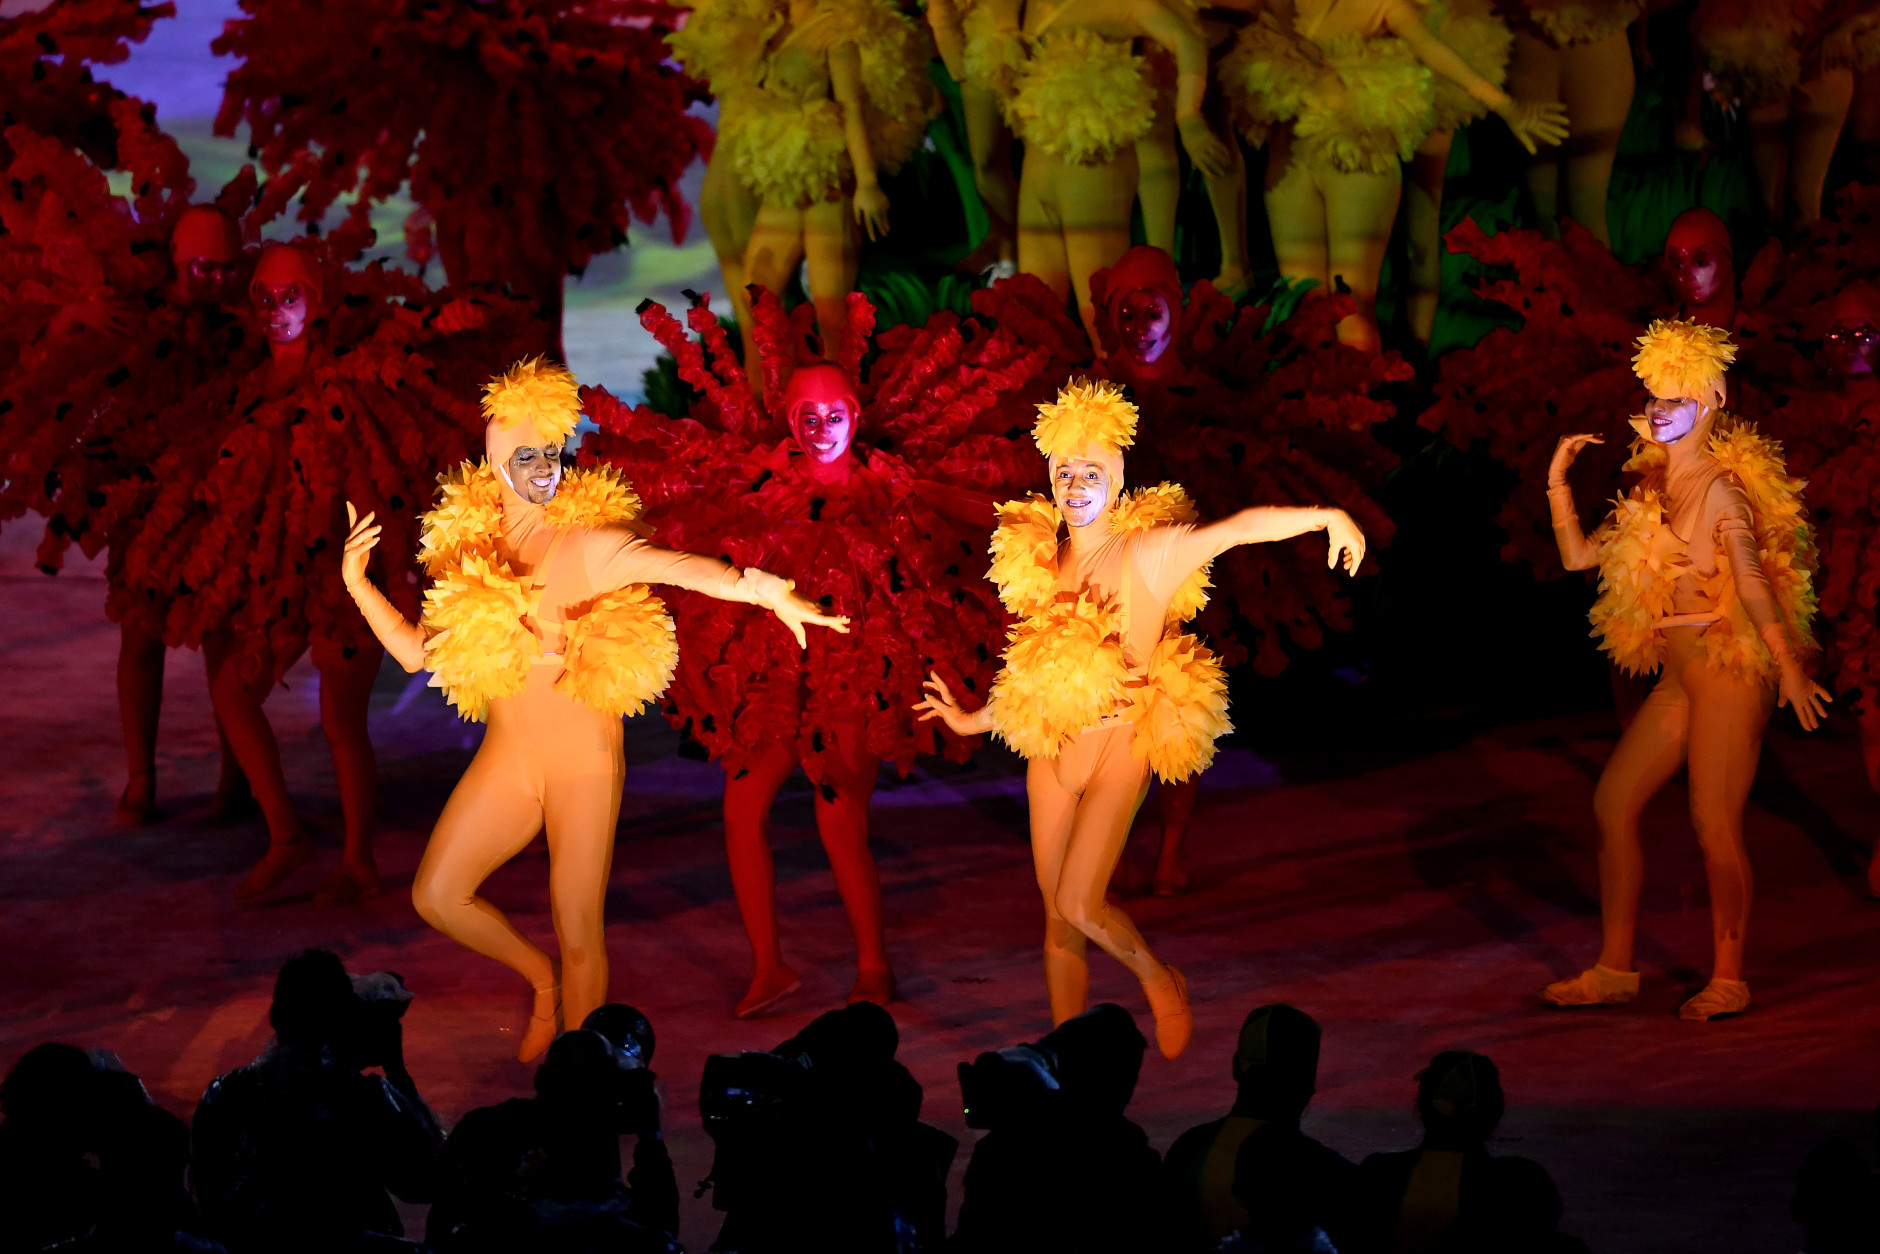 RIO DE JANEIRO, BRAZIL - AUGUST 21:  Dancers perform at 'The Art of Burle Marx' segment during the Closing Ceremony on Day 16 of the Rio 2016 Olympic Games at Maracana Stadium on August 21, 2016 in Rio de Janeiro, Brazil.  (Photo by Pascal Le Segretain/Getty Images)